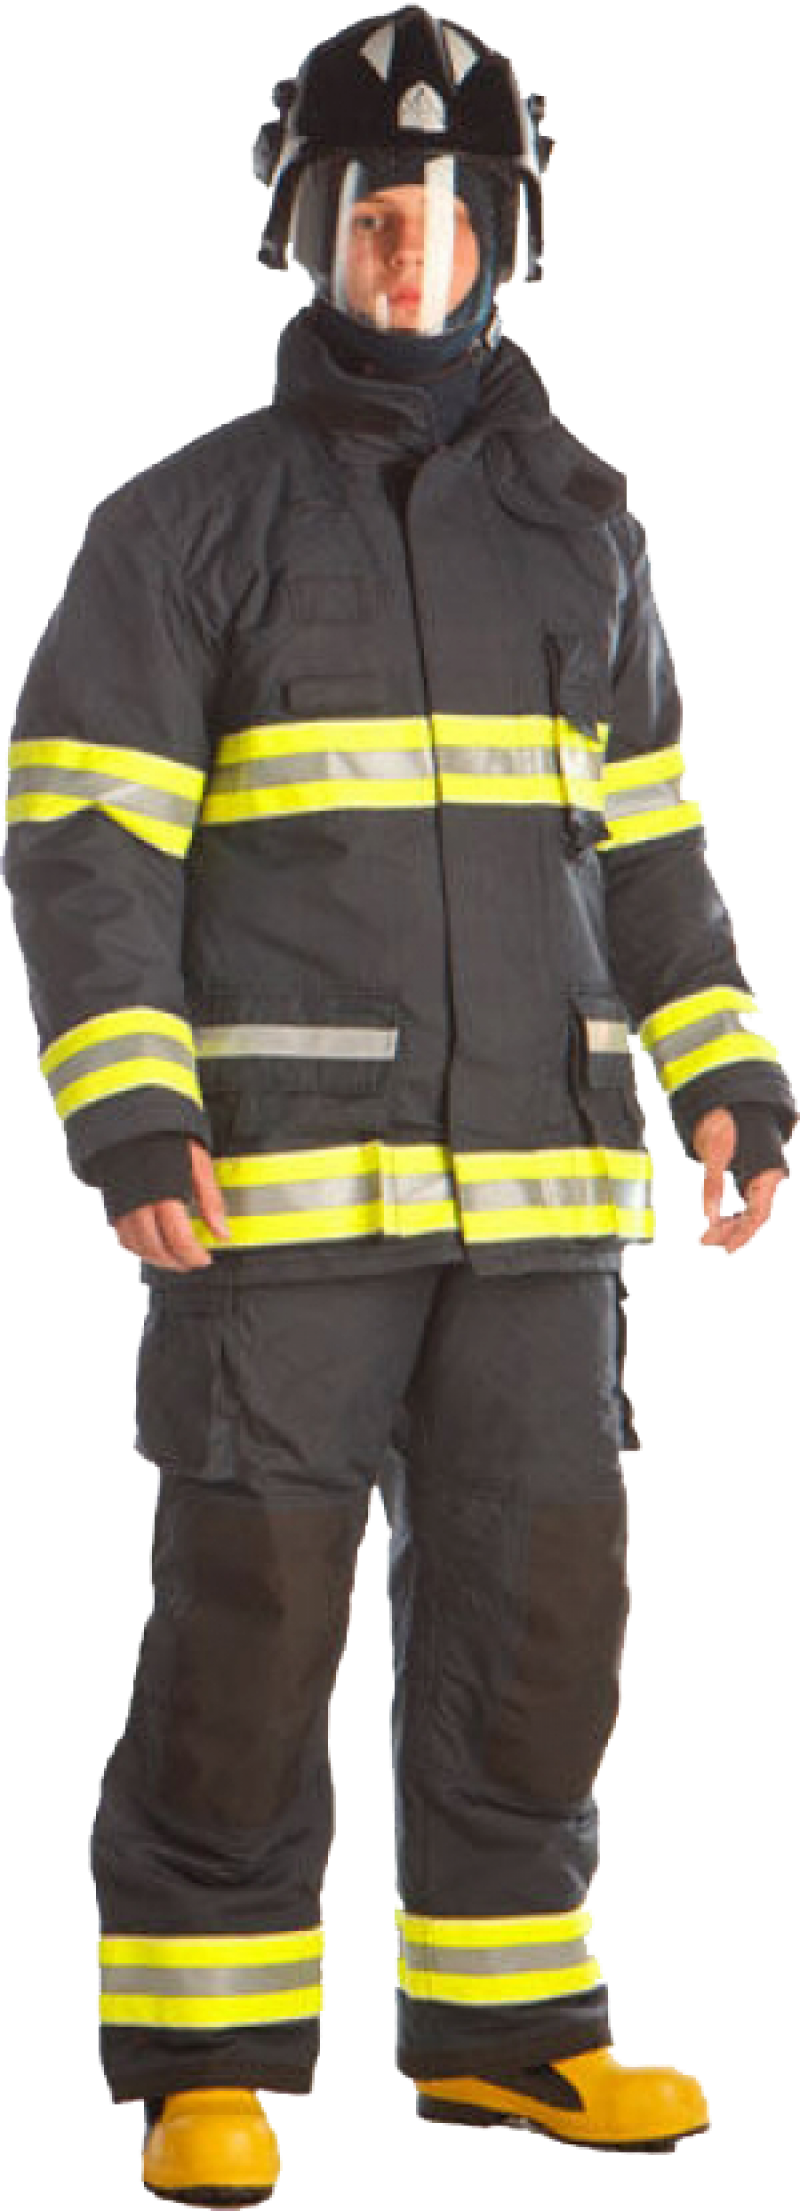 Firefighter PNG Image PurePNG Free transparent CC0 PNG